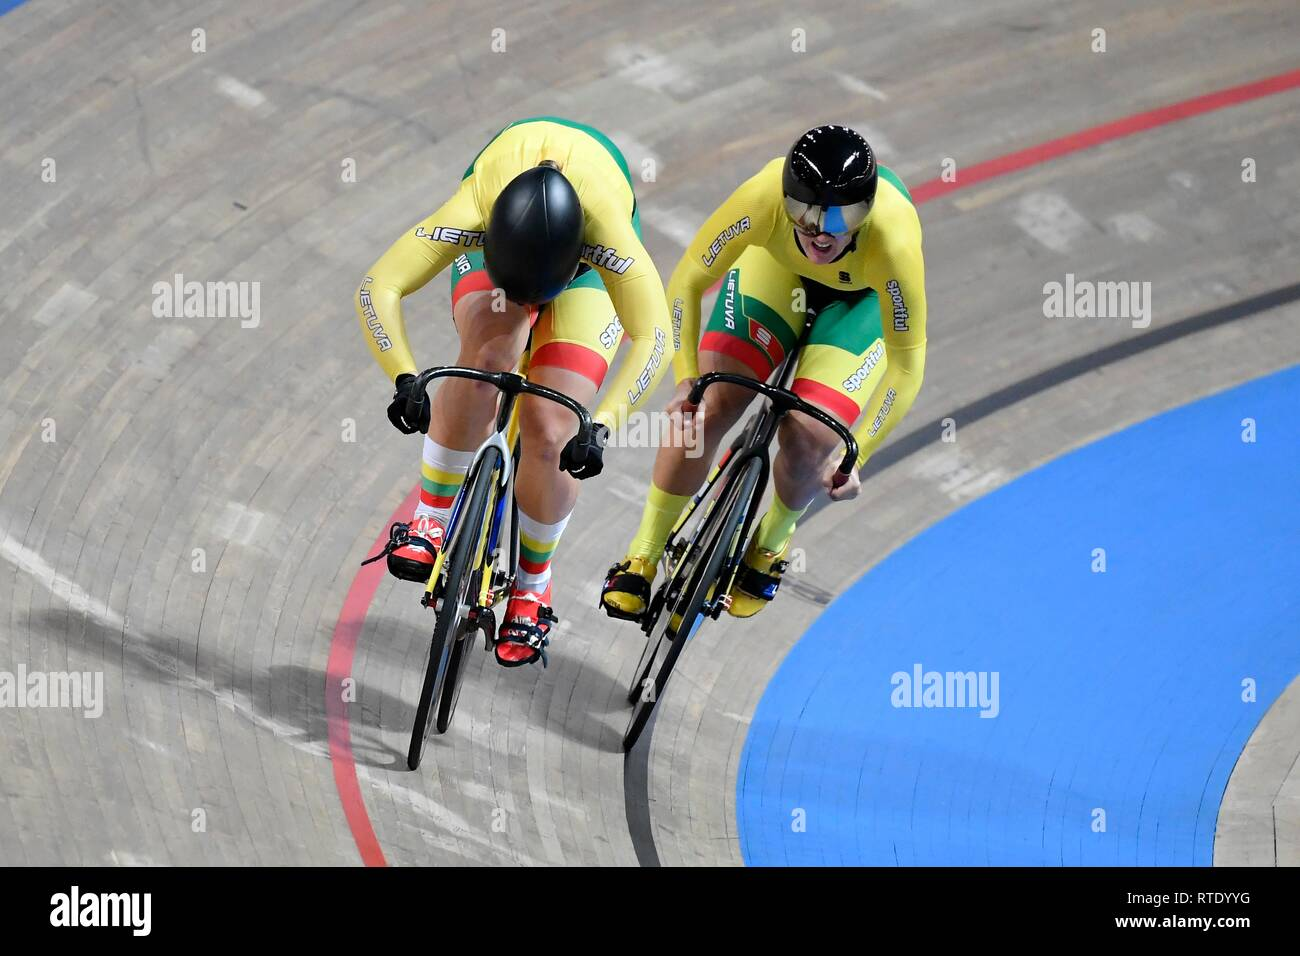 Track Cycling World Championships 2019 Uci On February 27 2019 At